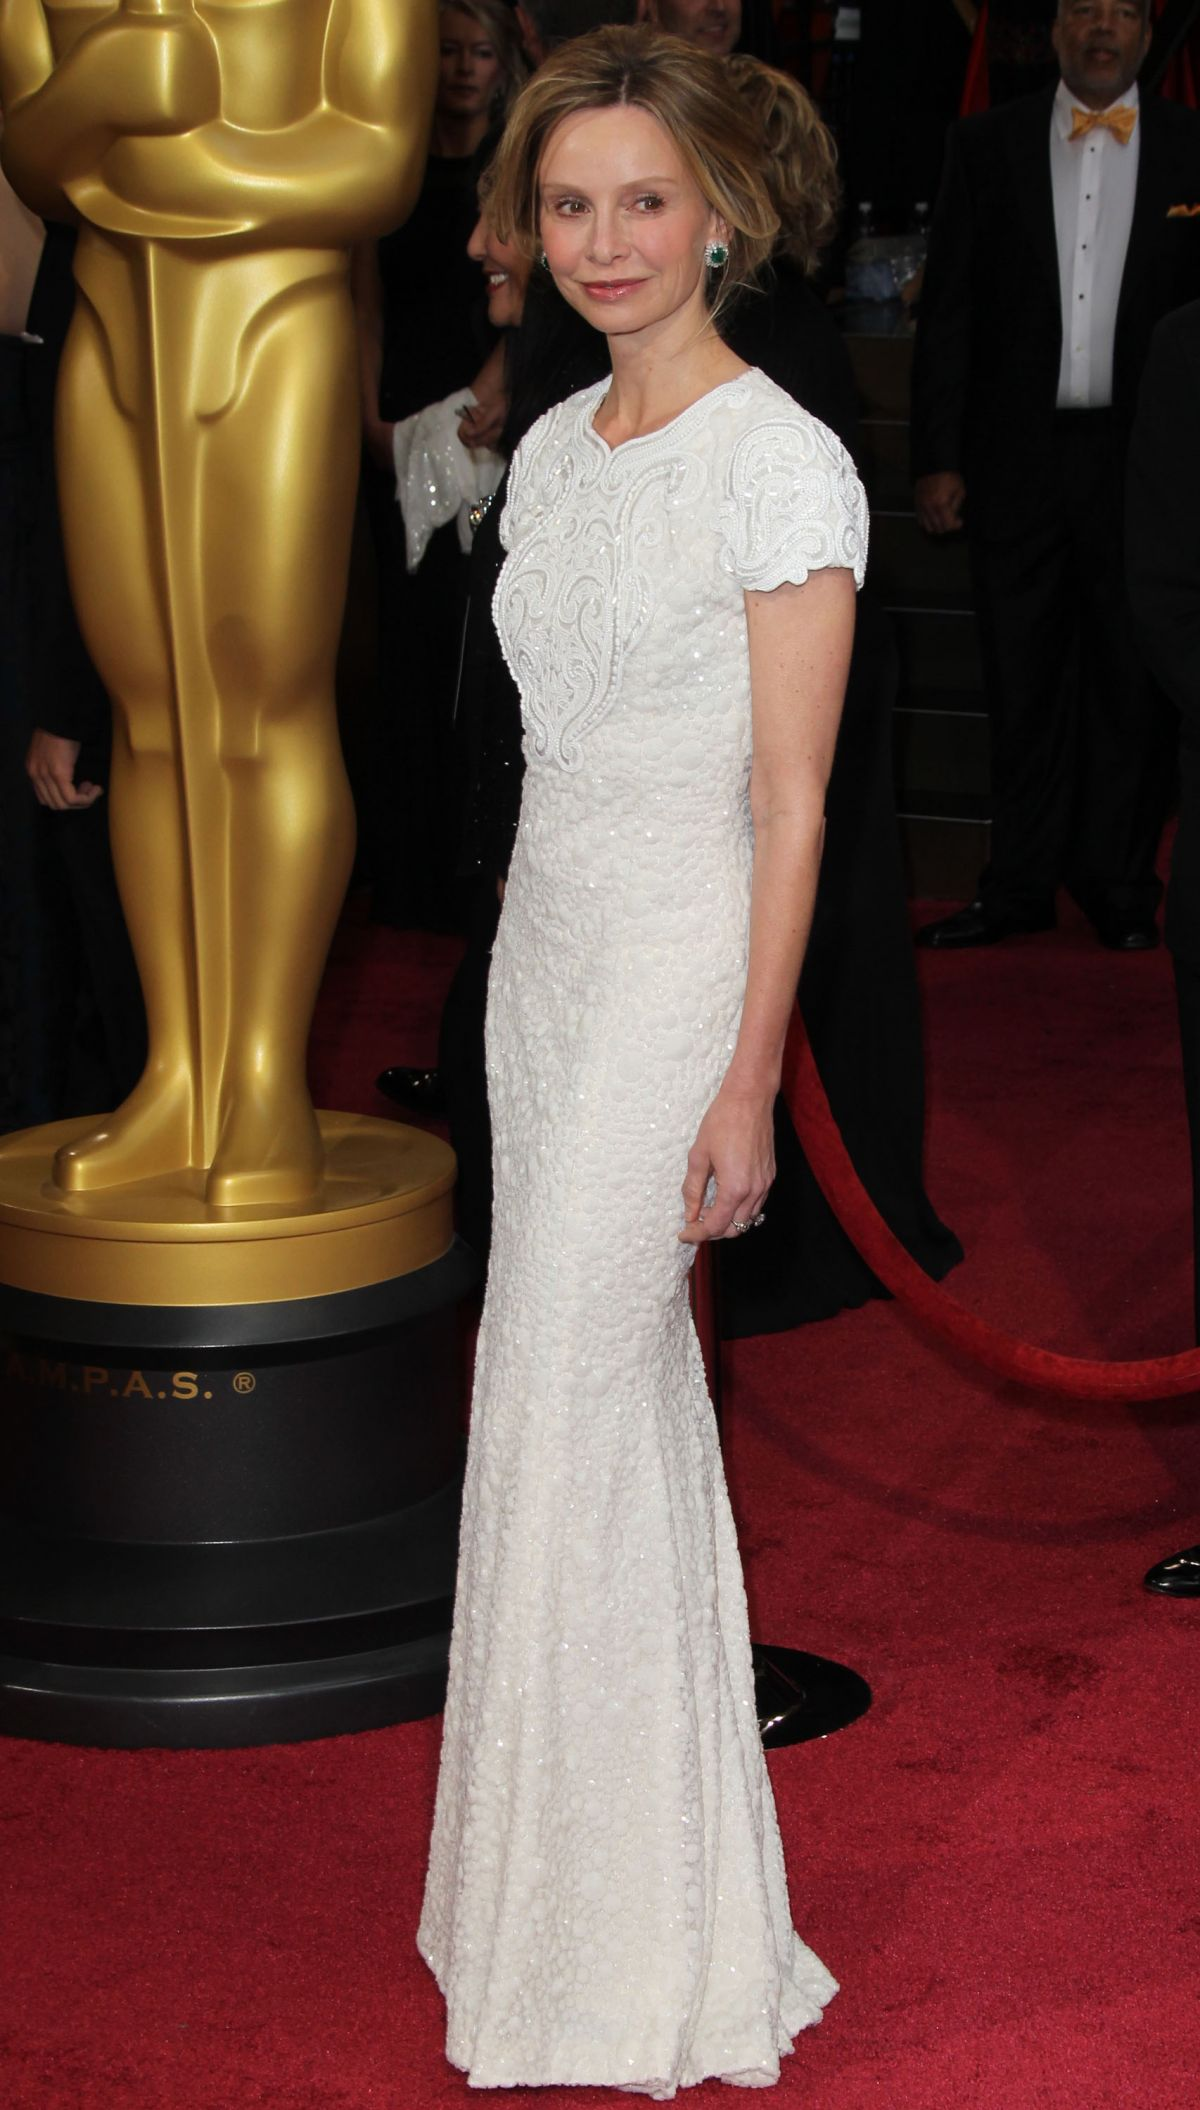 CALISTA FLOCKHART at 86th Annual Academy Awards in Hollywood